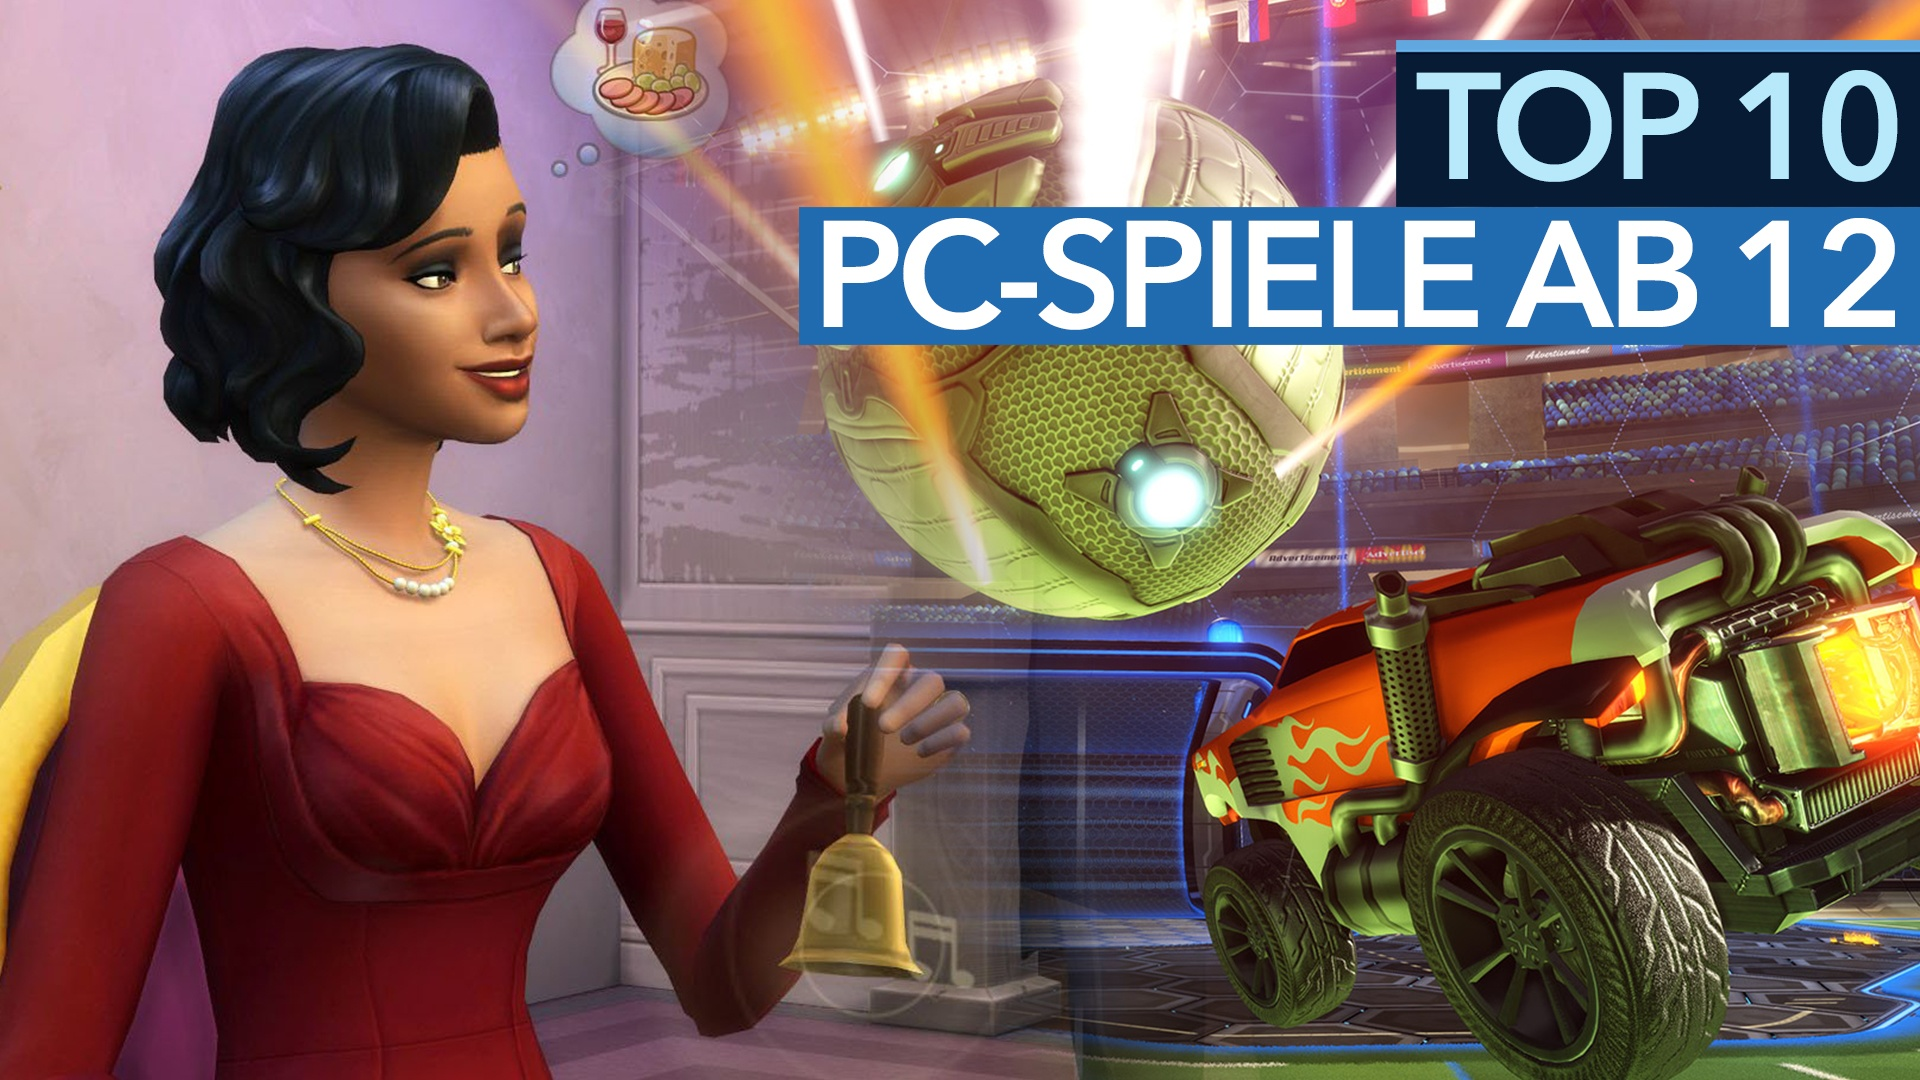 Action Spiele Ab 12